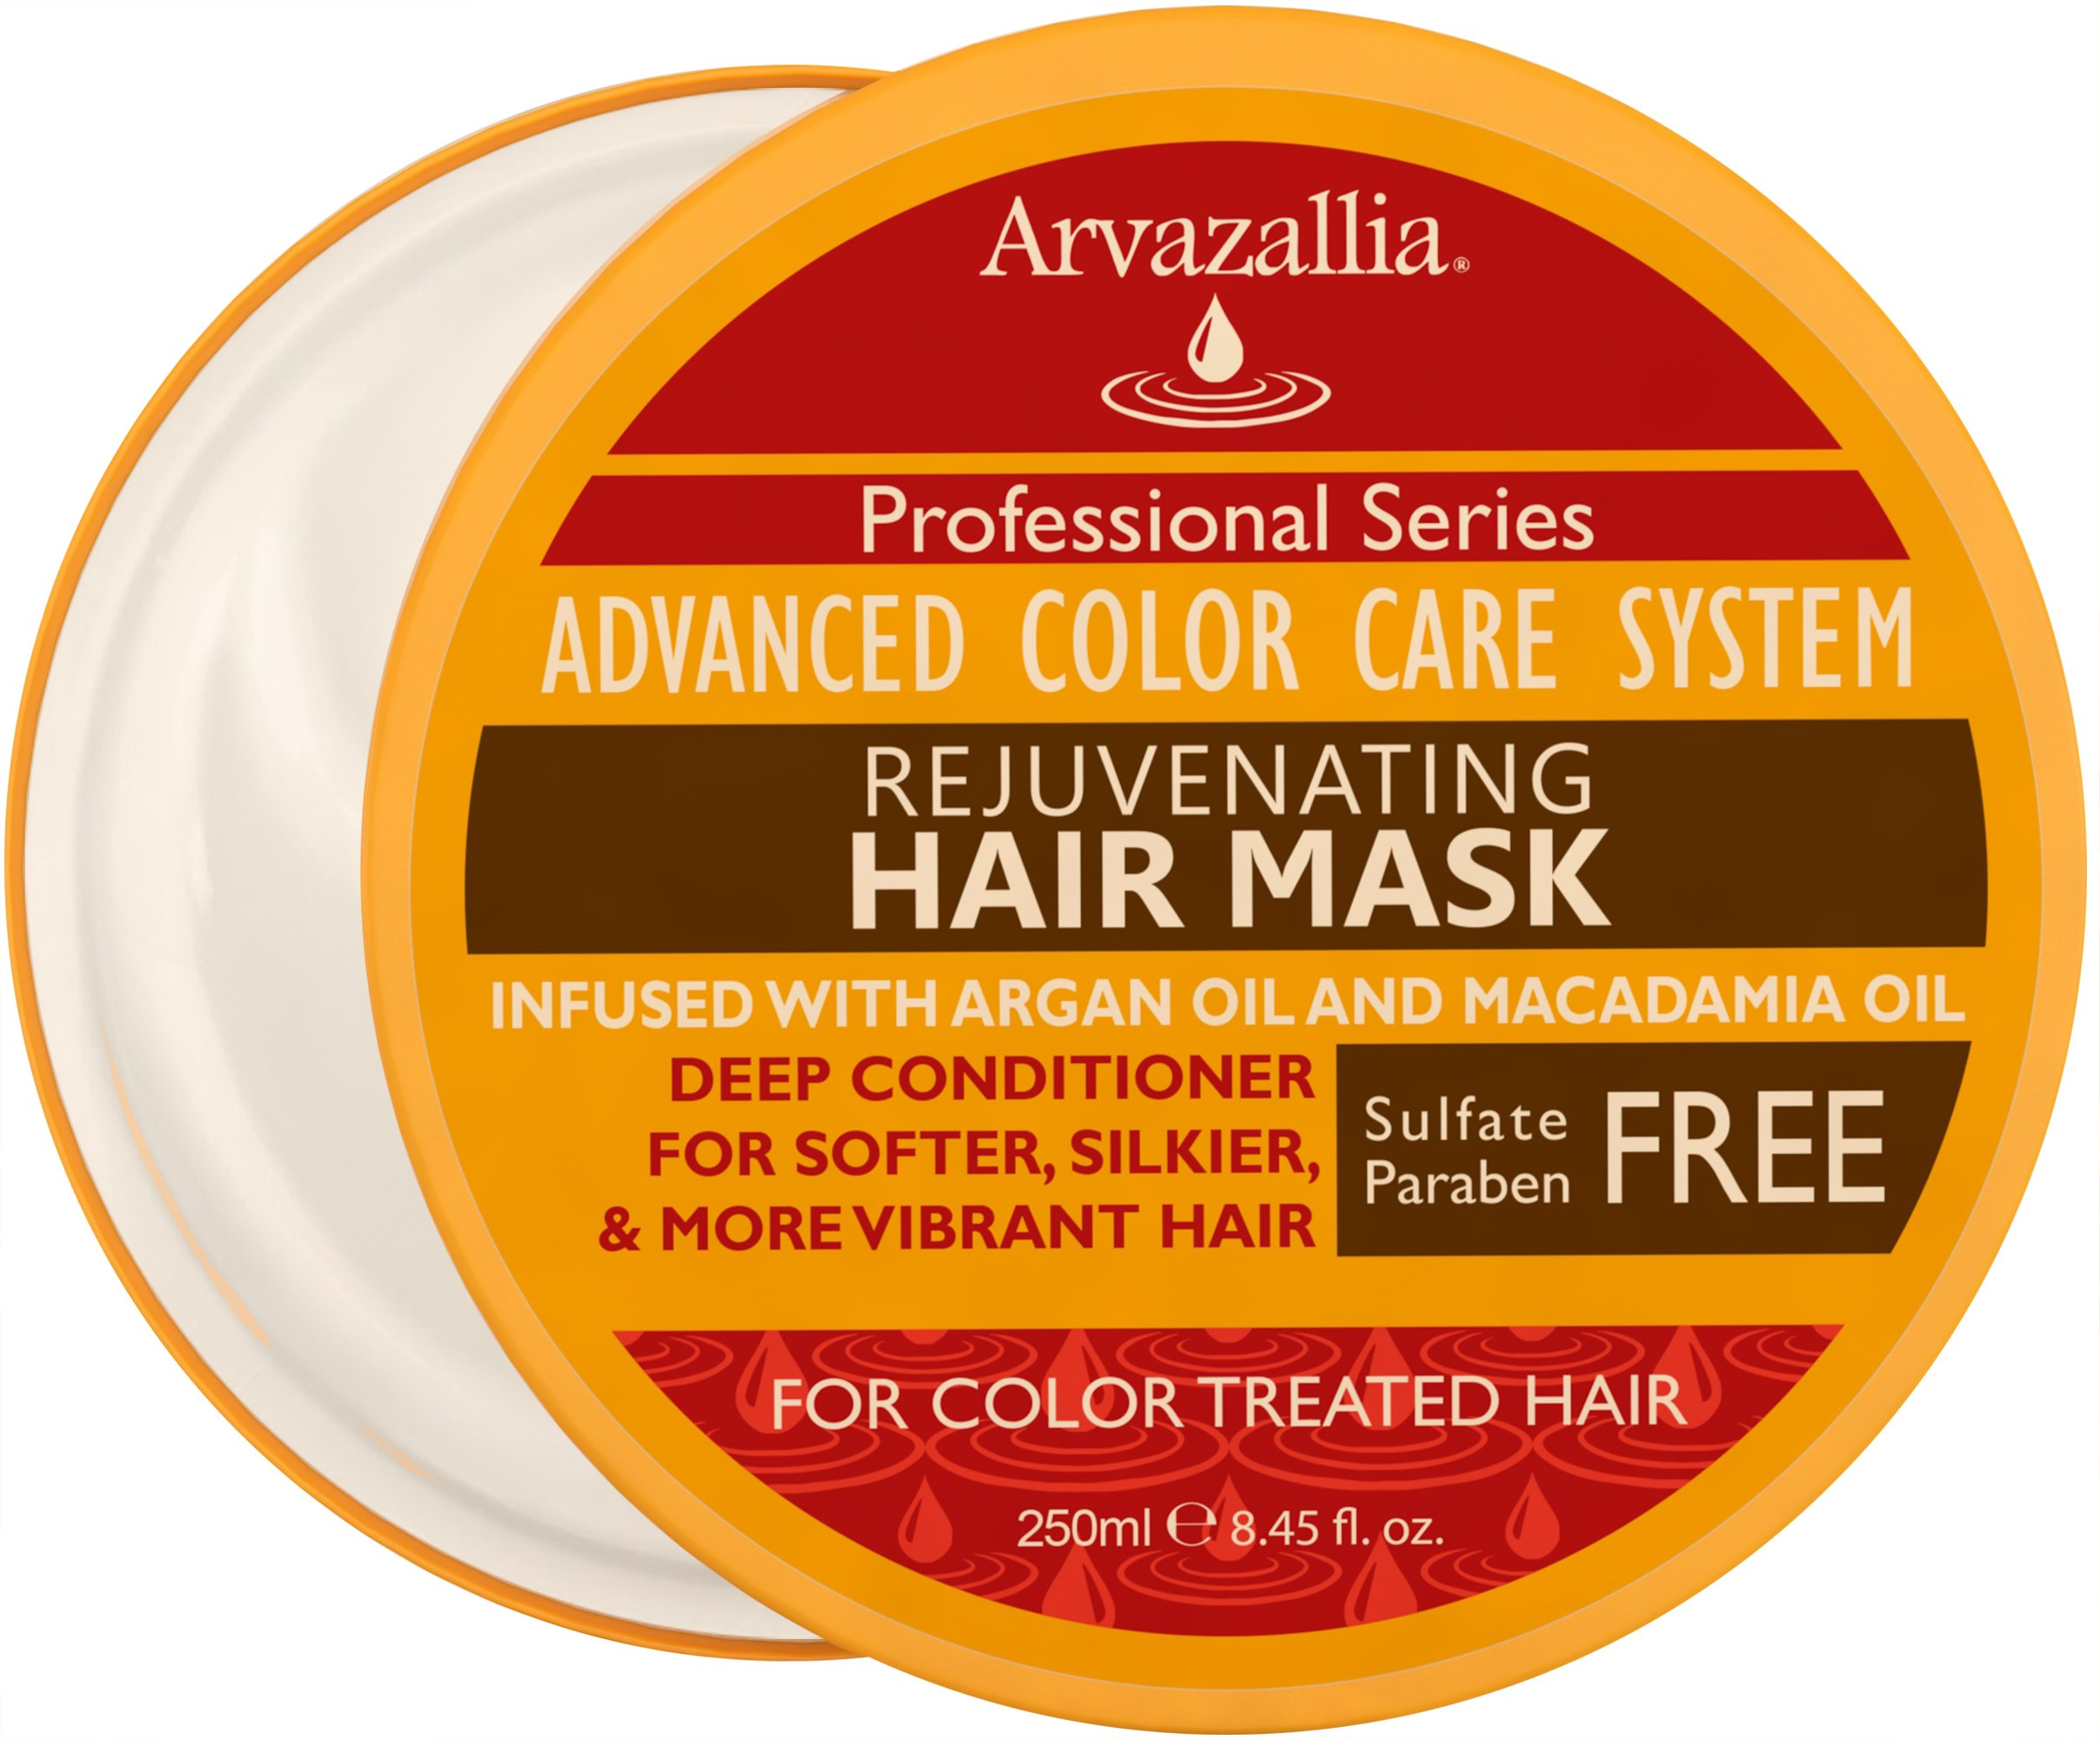 Rejuvenating Hair Mask and Deep Conditioner For Color Treated Hair with Argan Oil and Macadamia Oil By Arvazallia - Sulfate Free & Paraben Free by Arvazallia